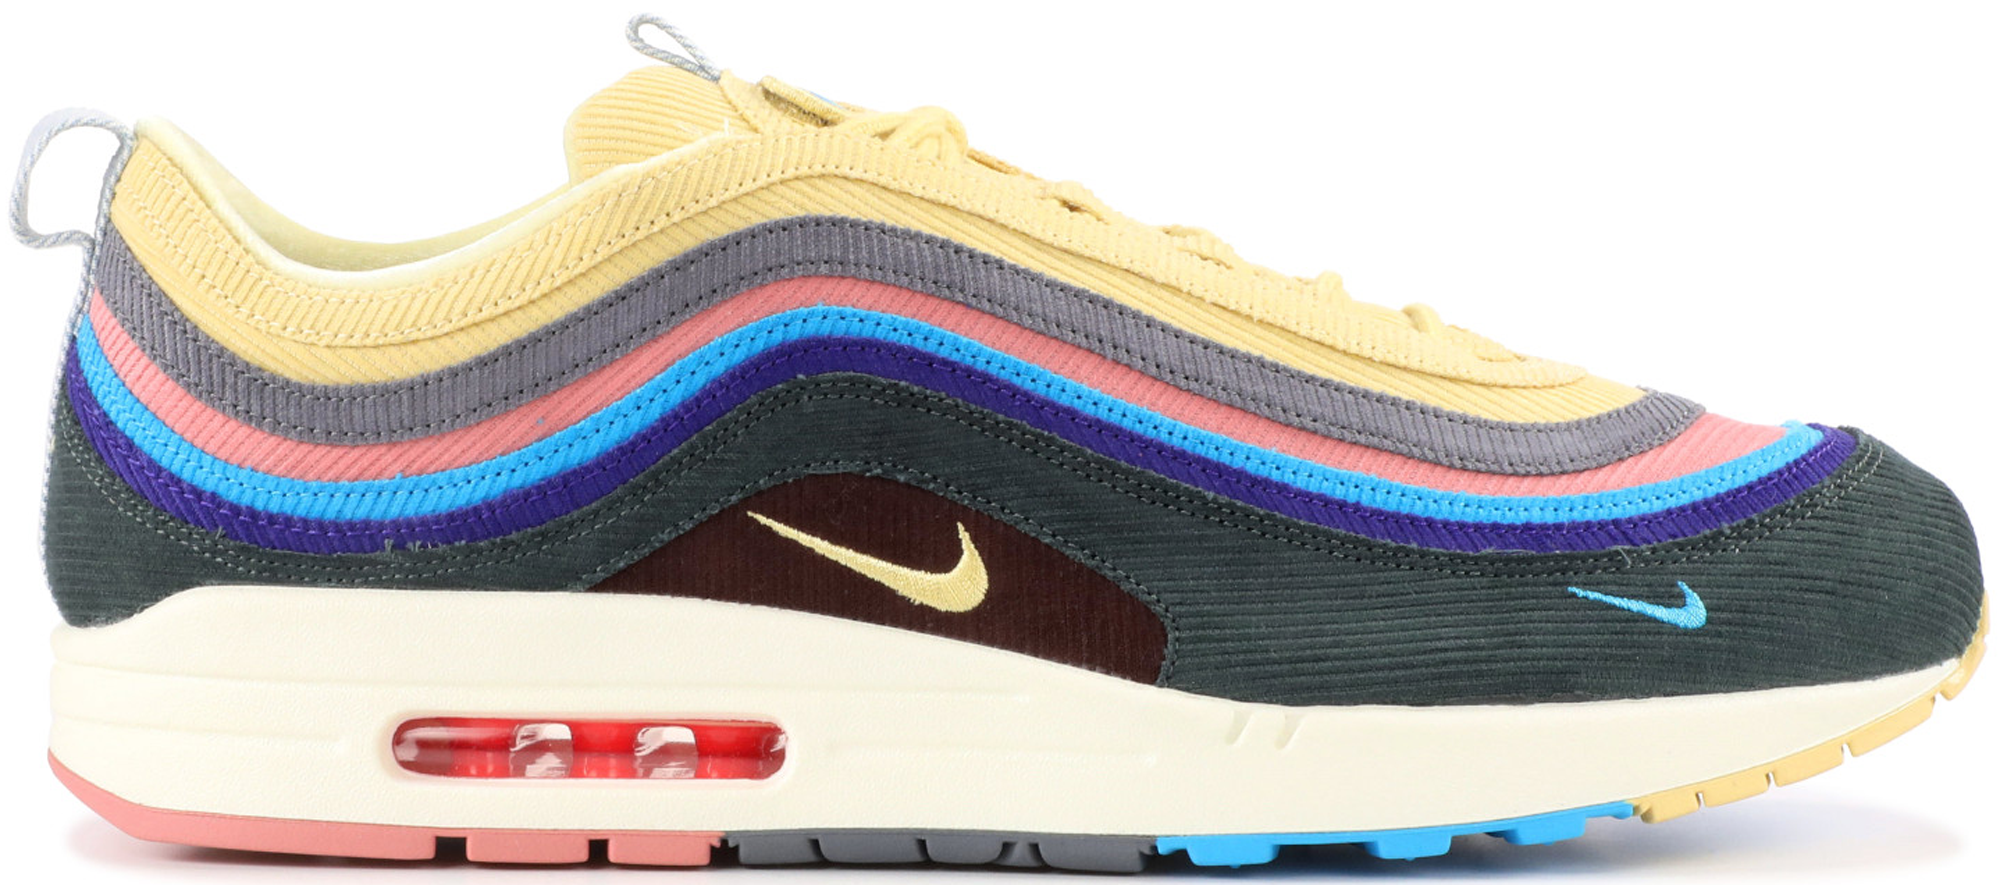 Air Max 1/97 Sean Wotherspoon (Extra Lace Set Only)